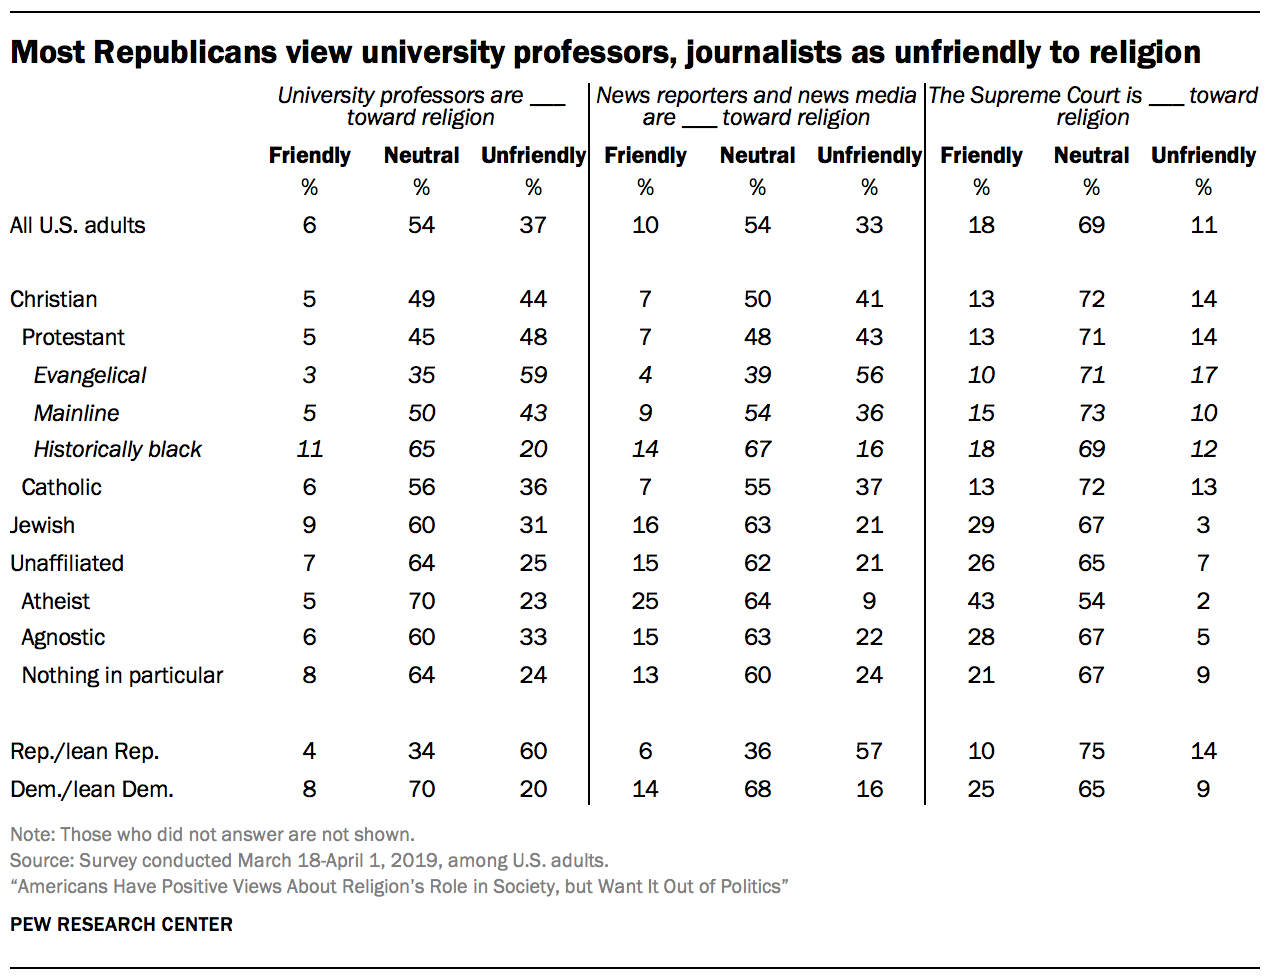 Most Republicans view university professors, journalists as unfriendly to religion